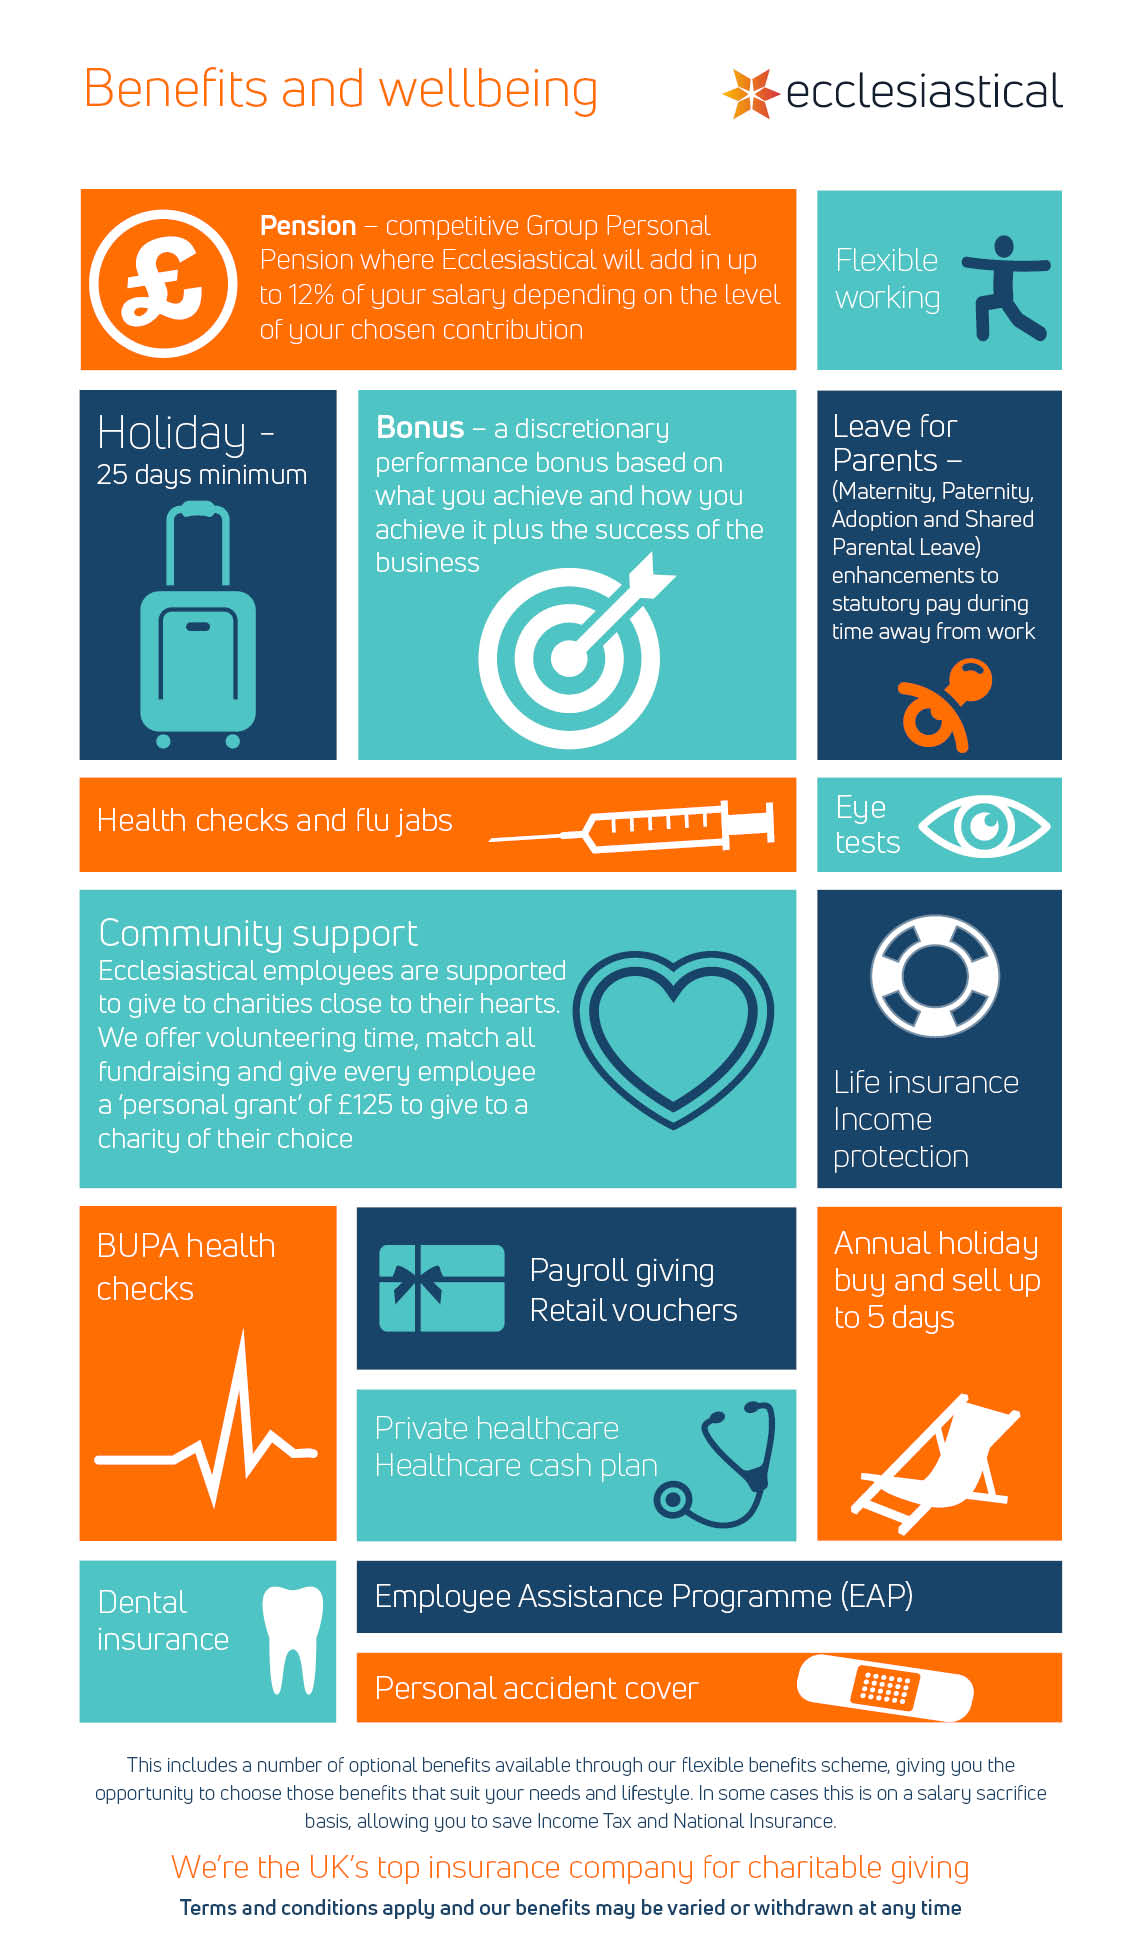 Benefits and wellbeing infographic